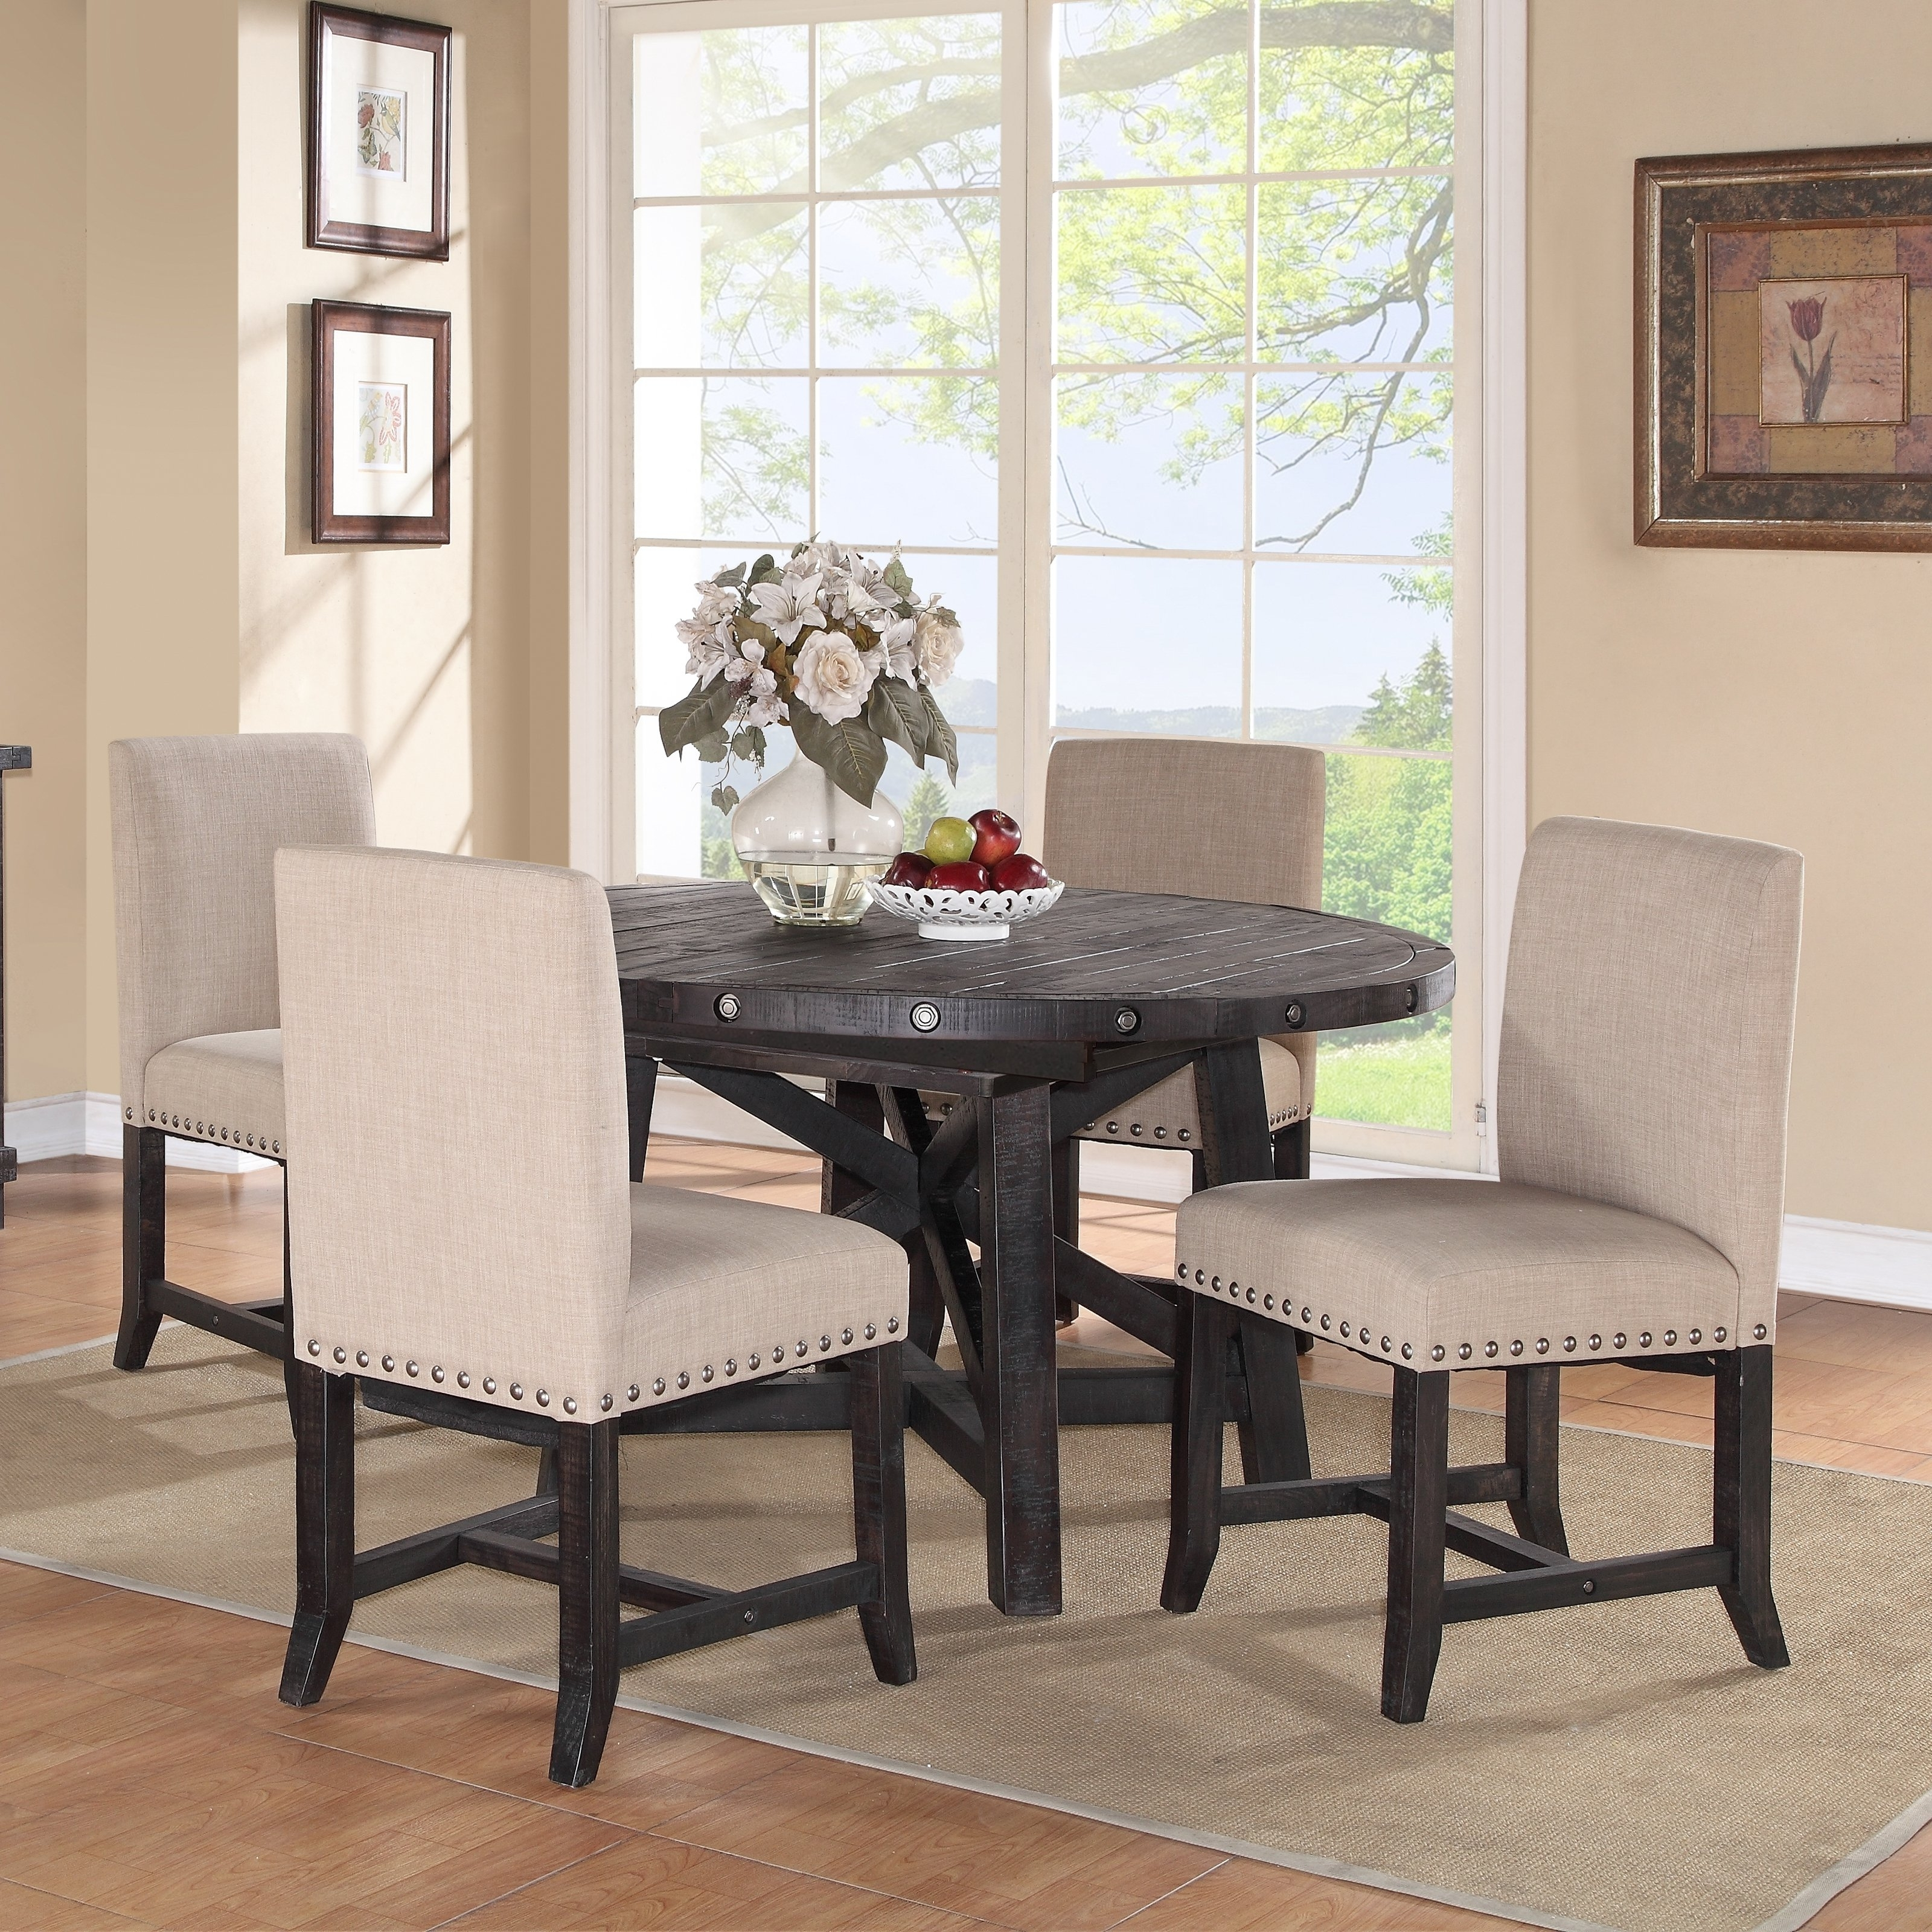 Dining Tables Ideas Throughout Recent Jaxon 7 Piece Rectangle Dining Sets With Upholstered Chairs (Gallery 17 of 25)